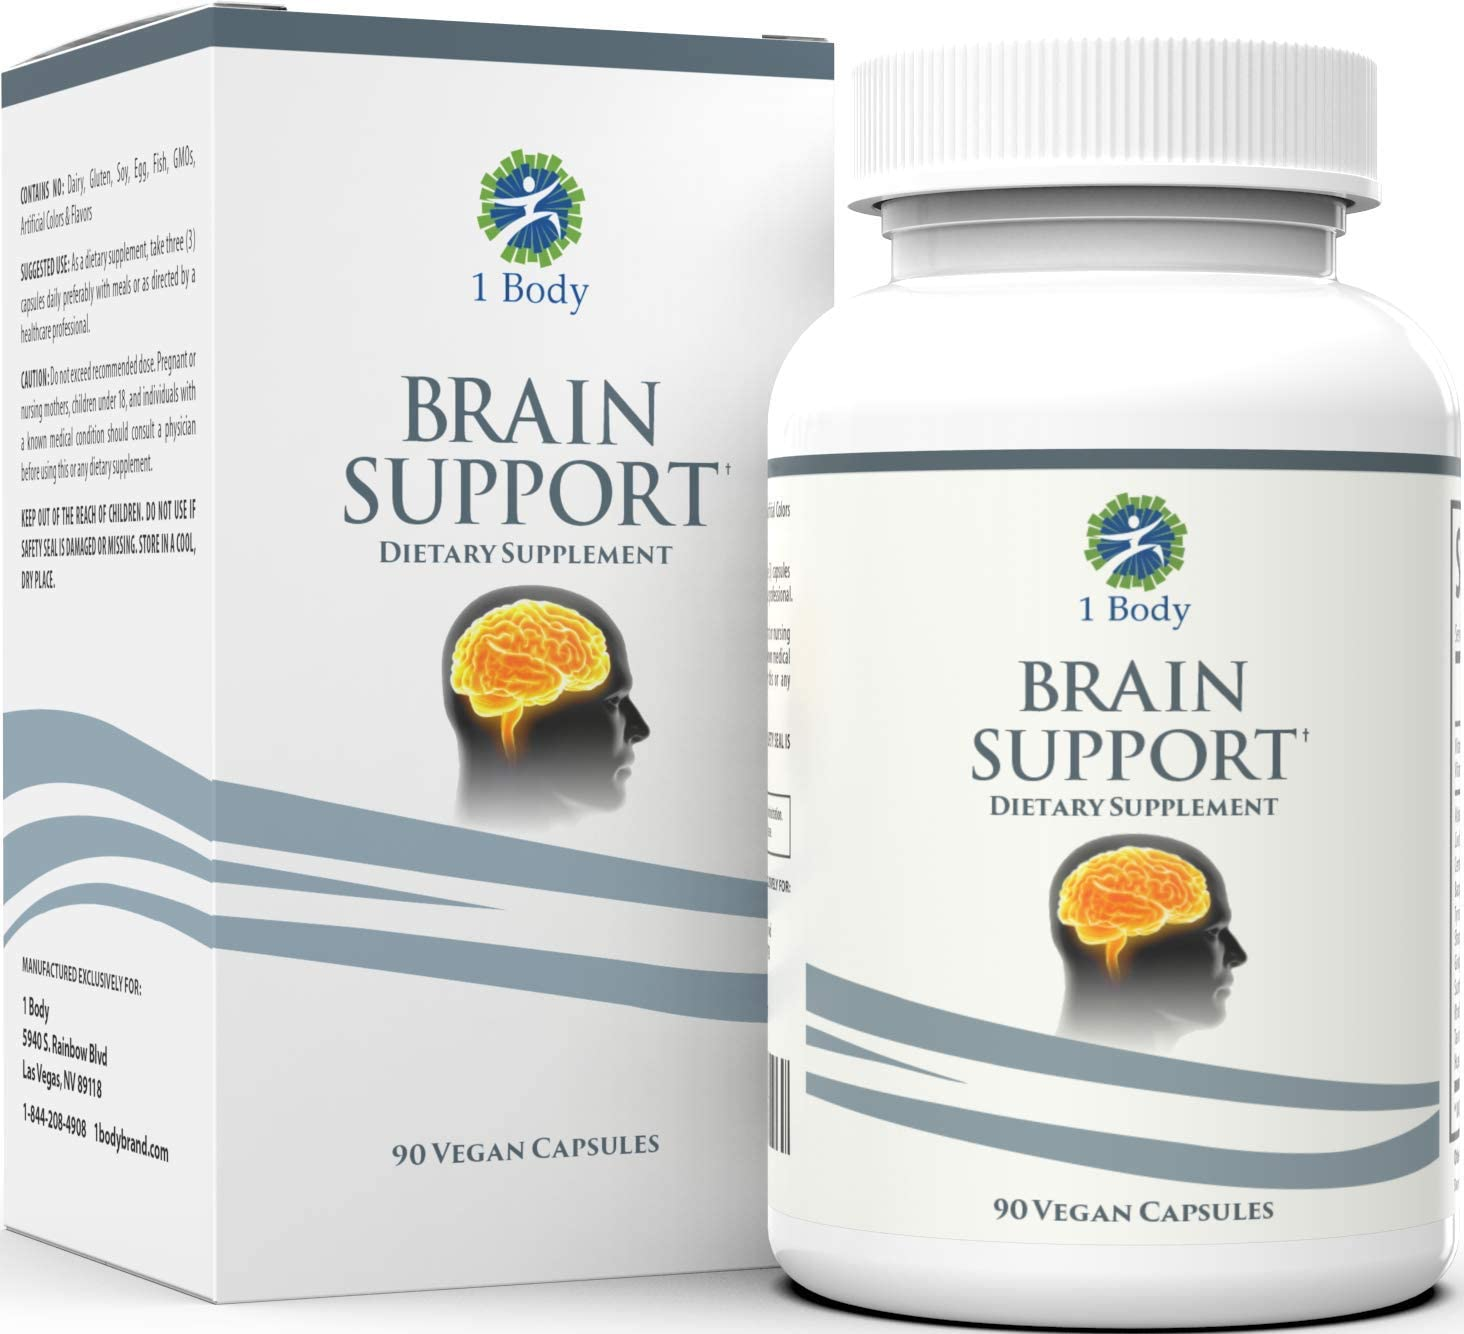 Support Healthy Brain Function with Nootropics, Improve Memory and Boost Focus – Alpha GPC, Lion s Mane Extract, Bacopa Monnieri, Phosphatidylserine, Ginkgo Biloba, Rhodiola Rosea, Huperzine A